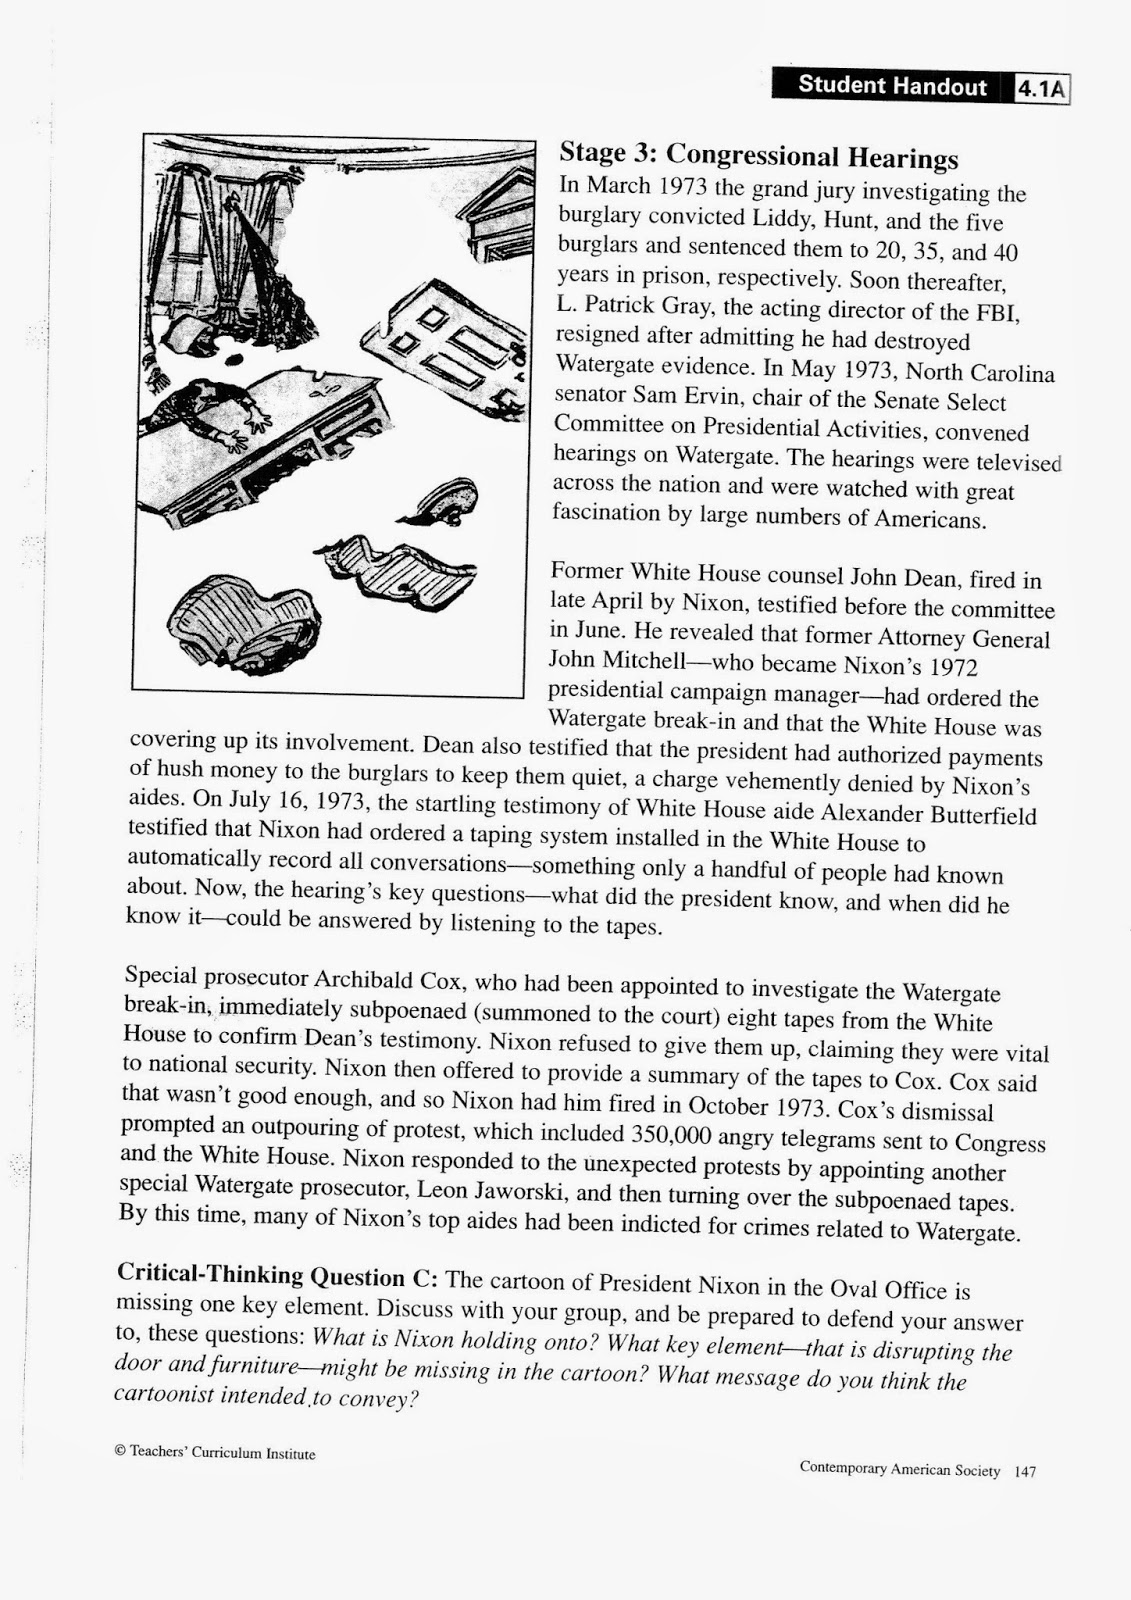 Analyzing Political Cartoons Worksheet : Worksheet analyzing political cartoons